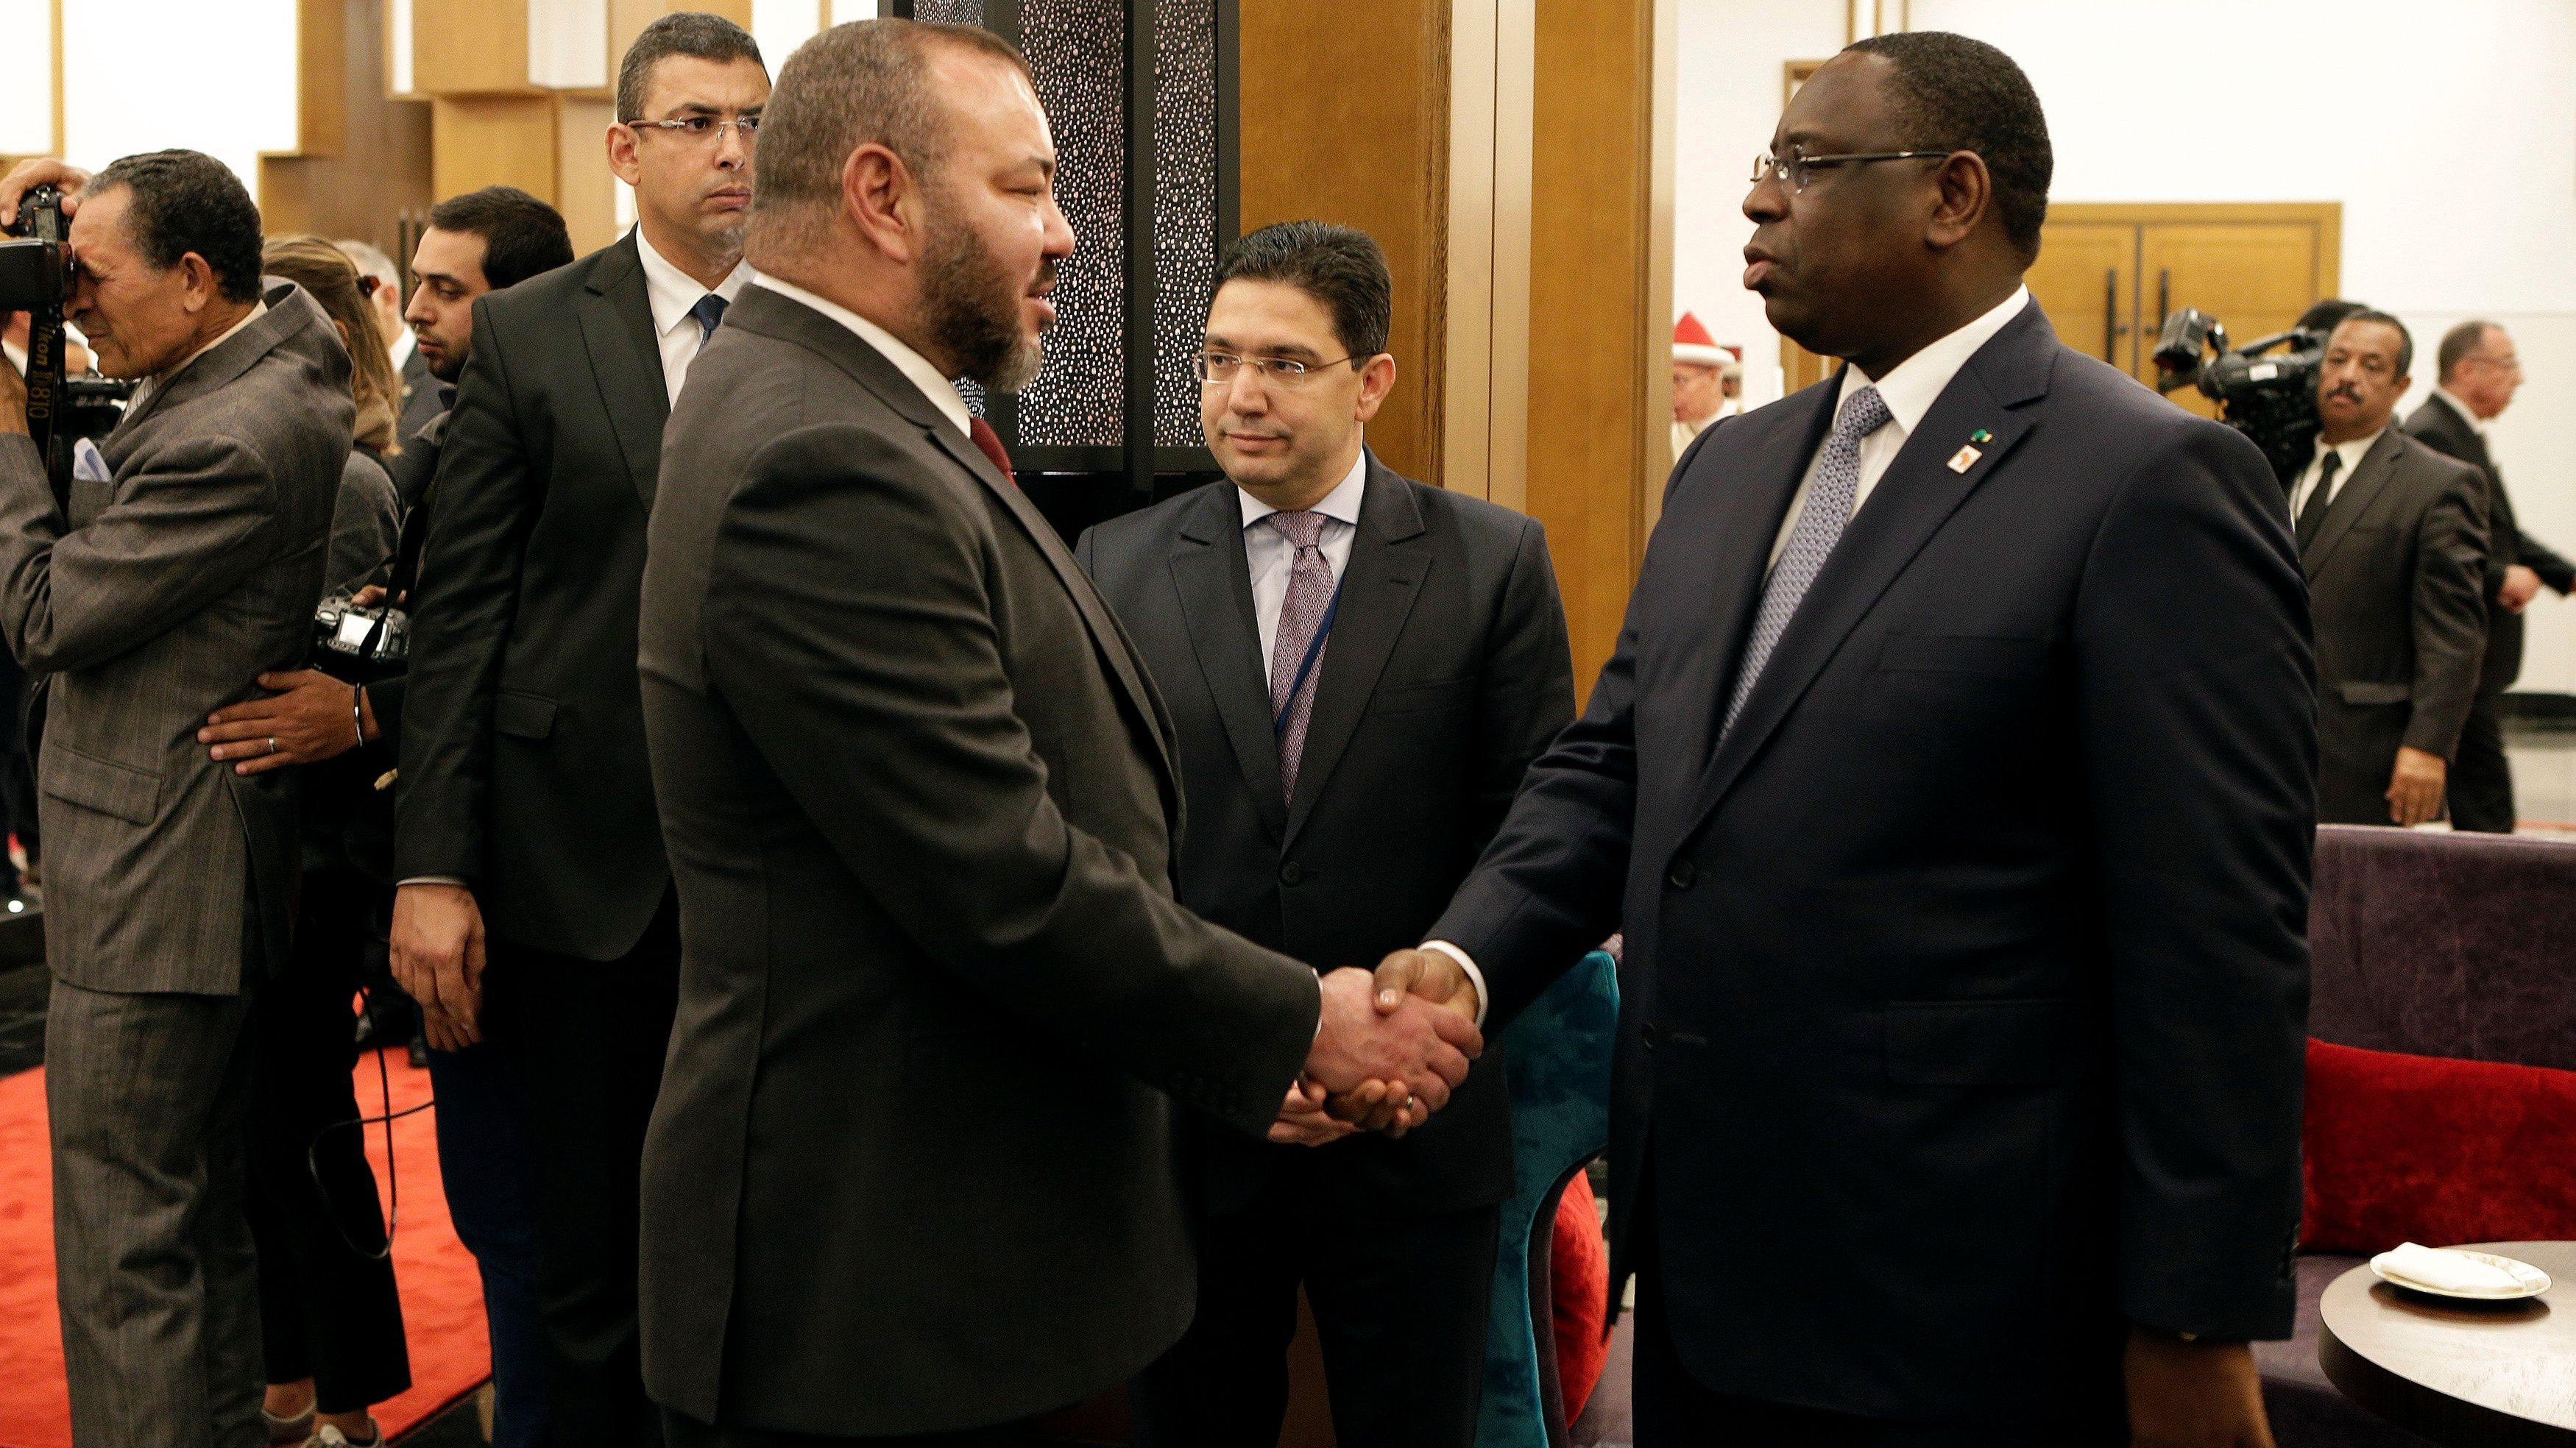 King Mohammed VI of Morocco (L) shakes hand with President of Senegal Macky Sall at the opening of the Africa Action Summit, on the sidelines of the UN Climate Change Conference 2016 (COP22) in Marrakech